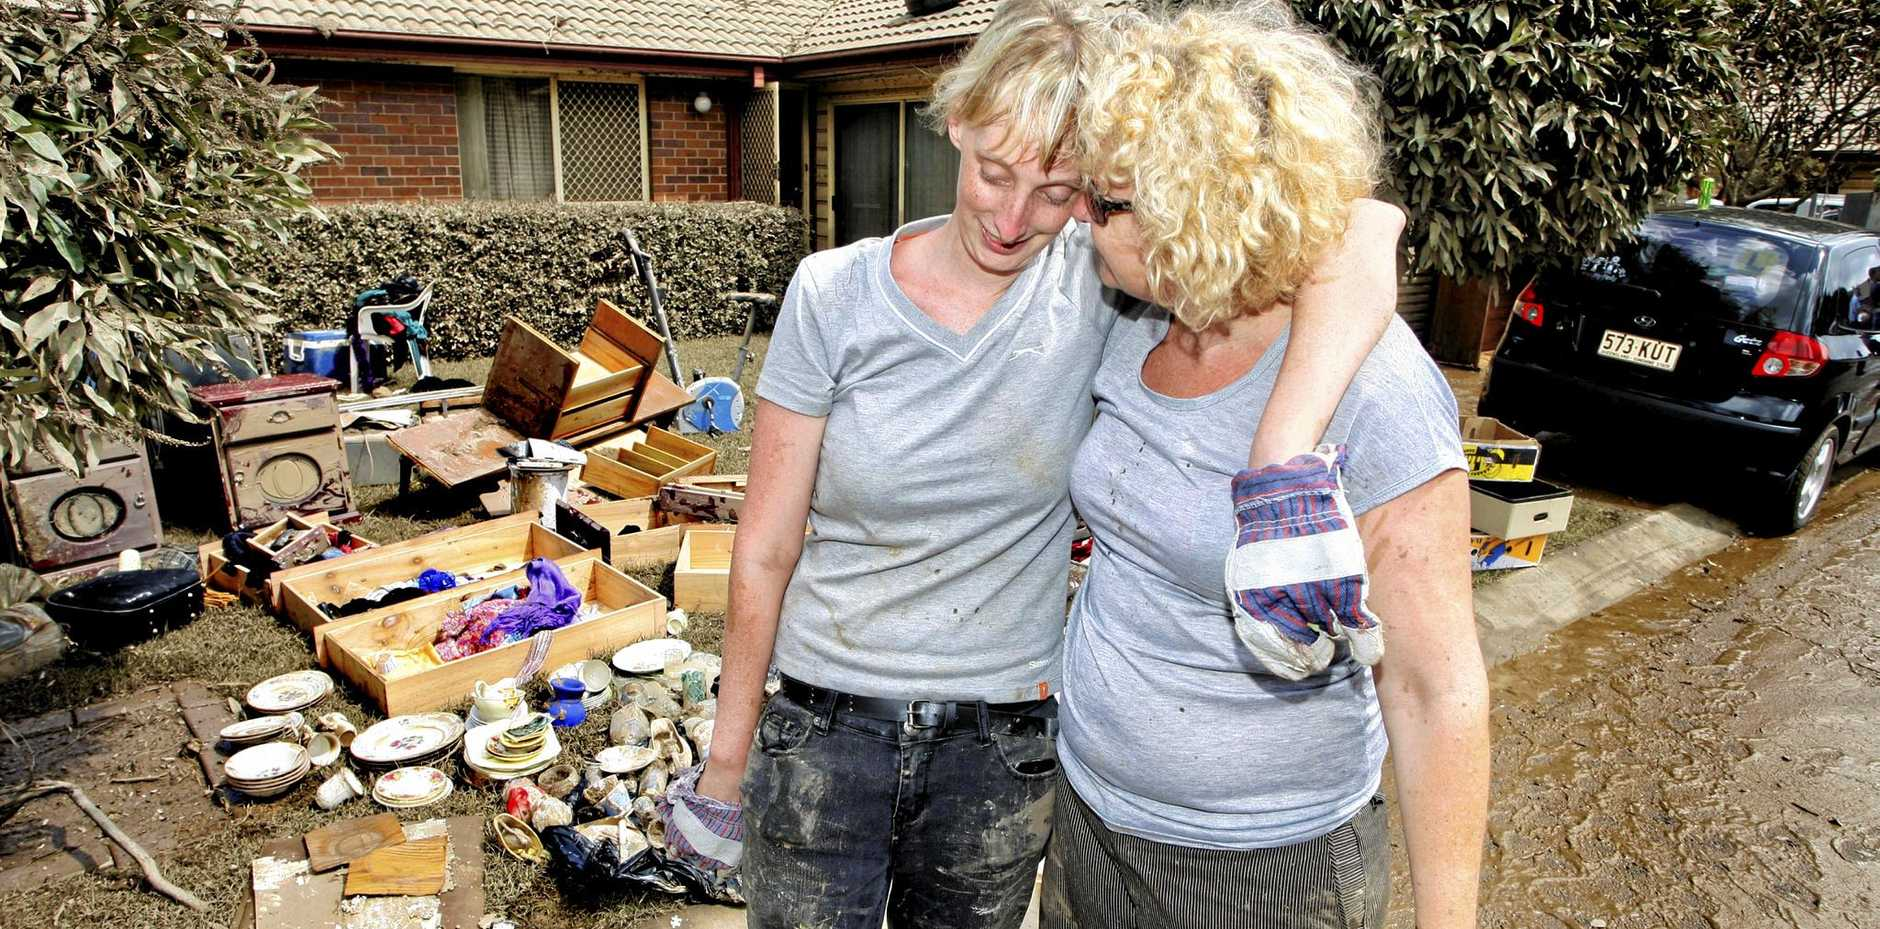 SUPPORT: The clean-up in Goodna in January, 2011 after major flooding. Goodna resident Benitta Harding is comforted by her friend Annie Walsh of Redbank Plains.